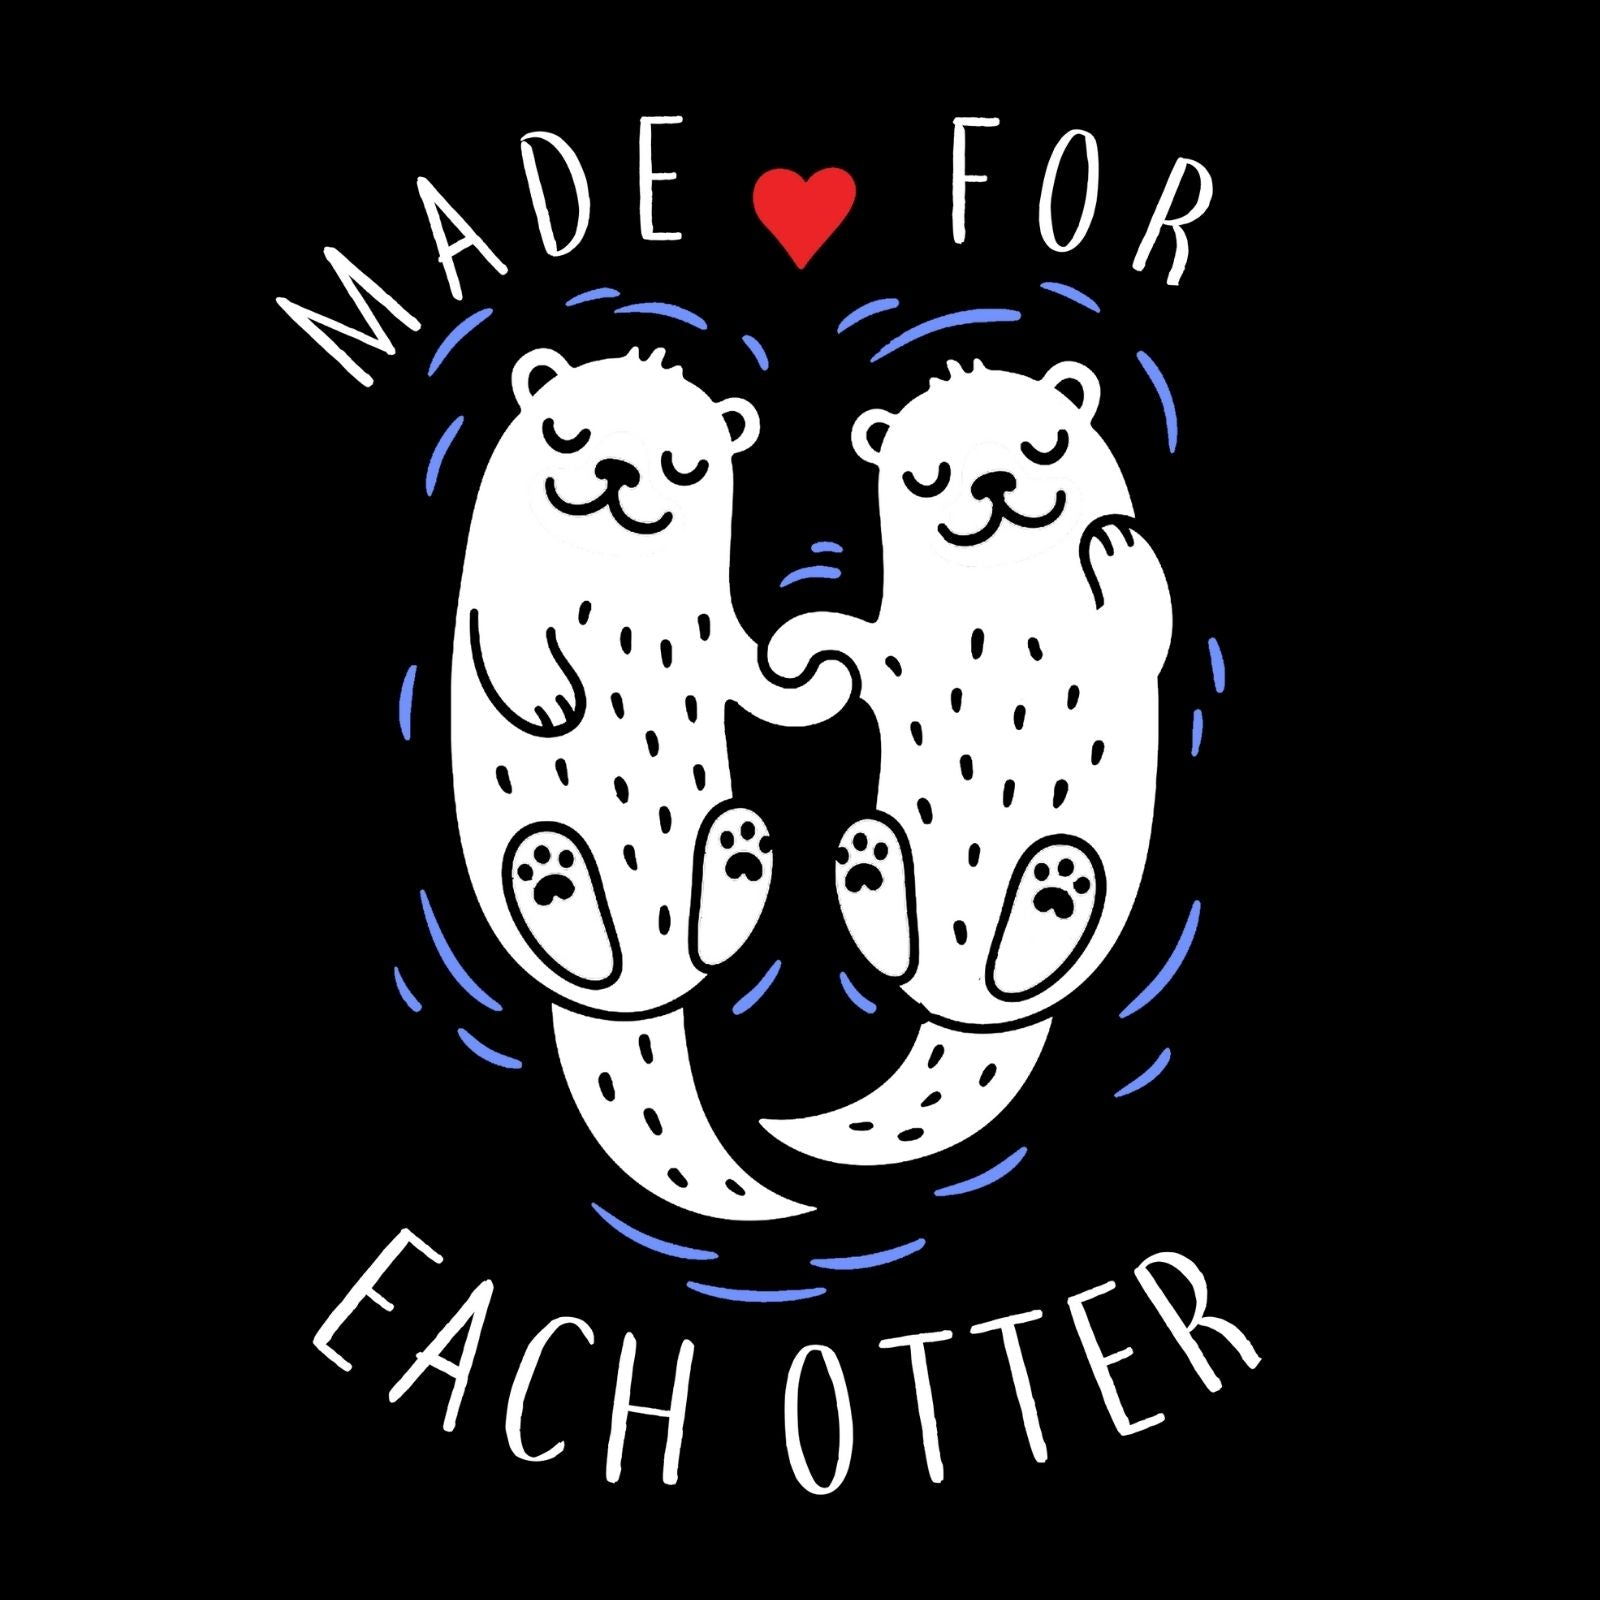 Made For Each Other - Bastard Graphics